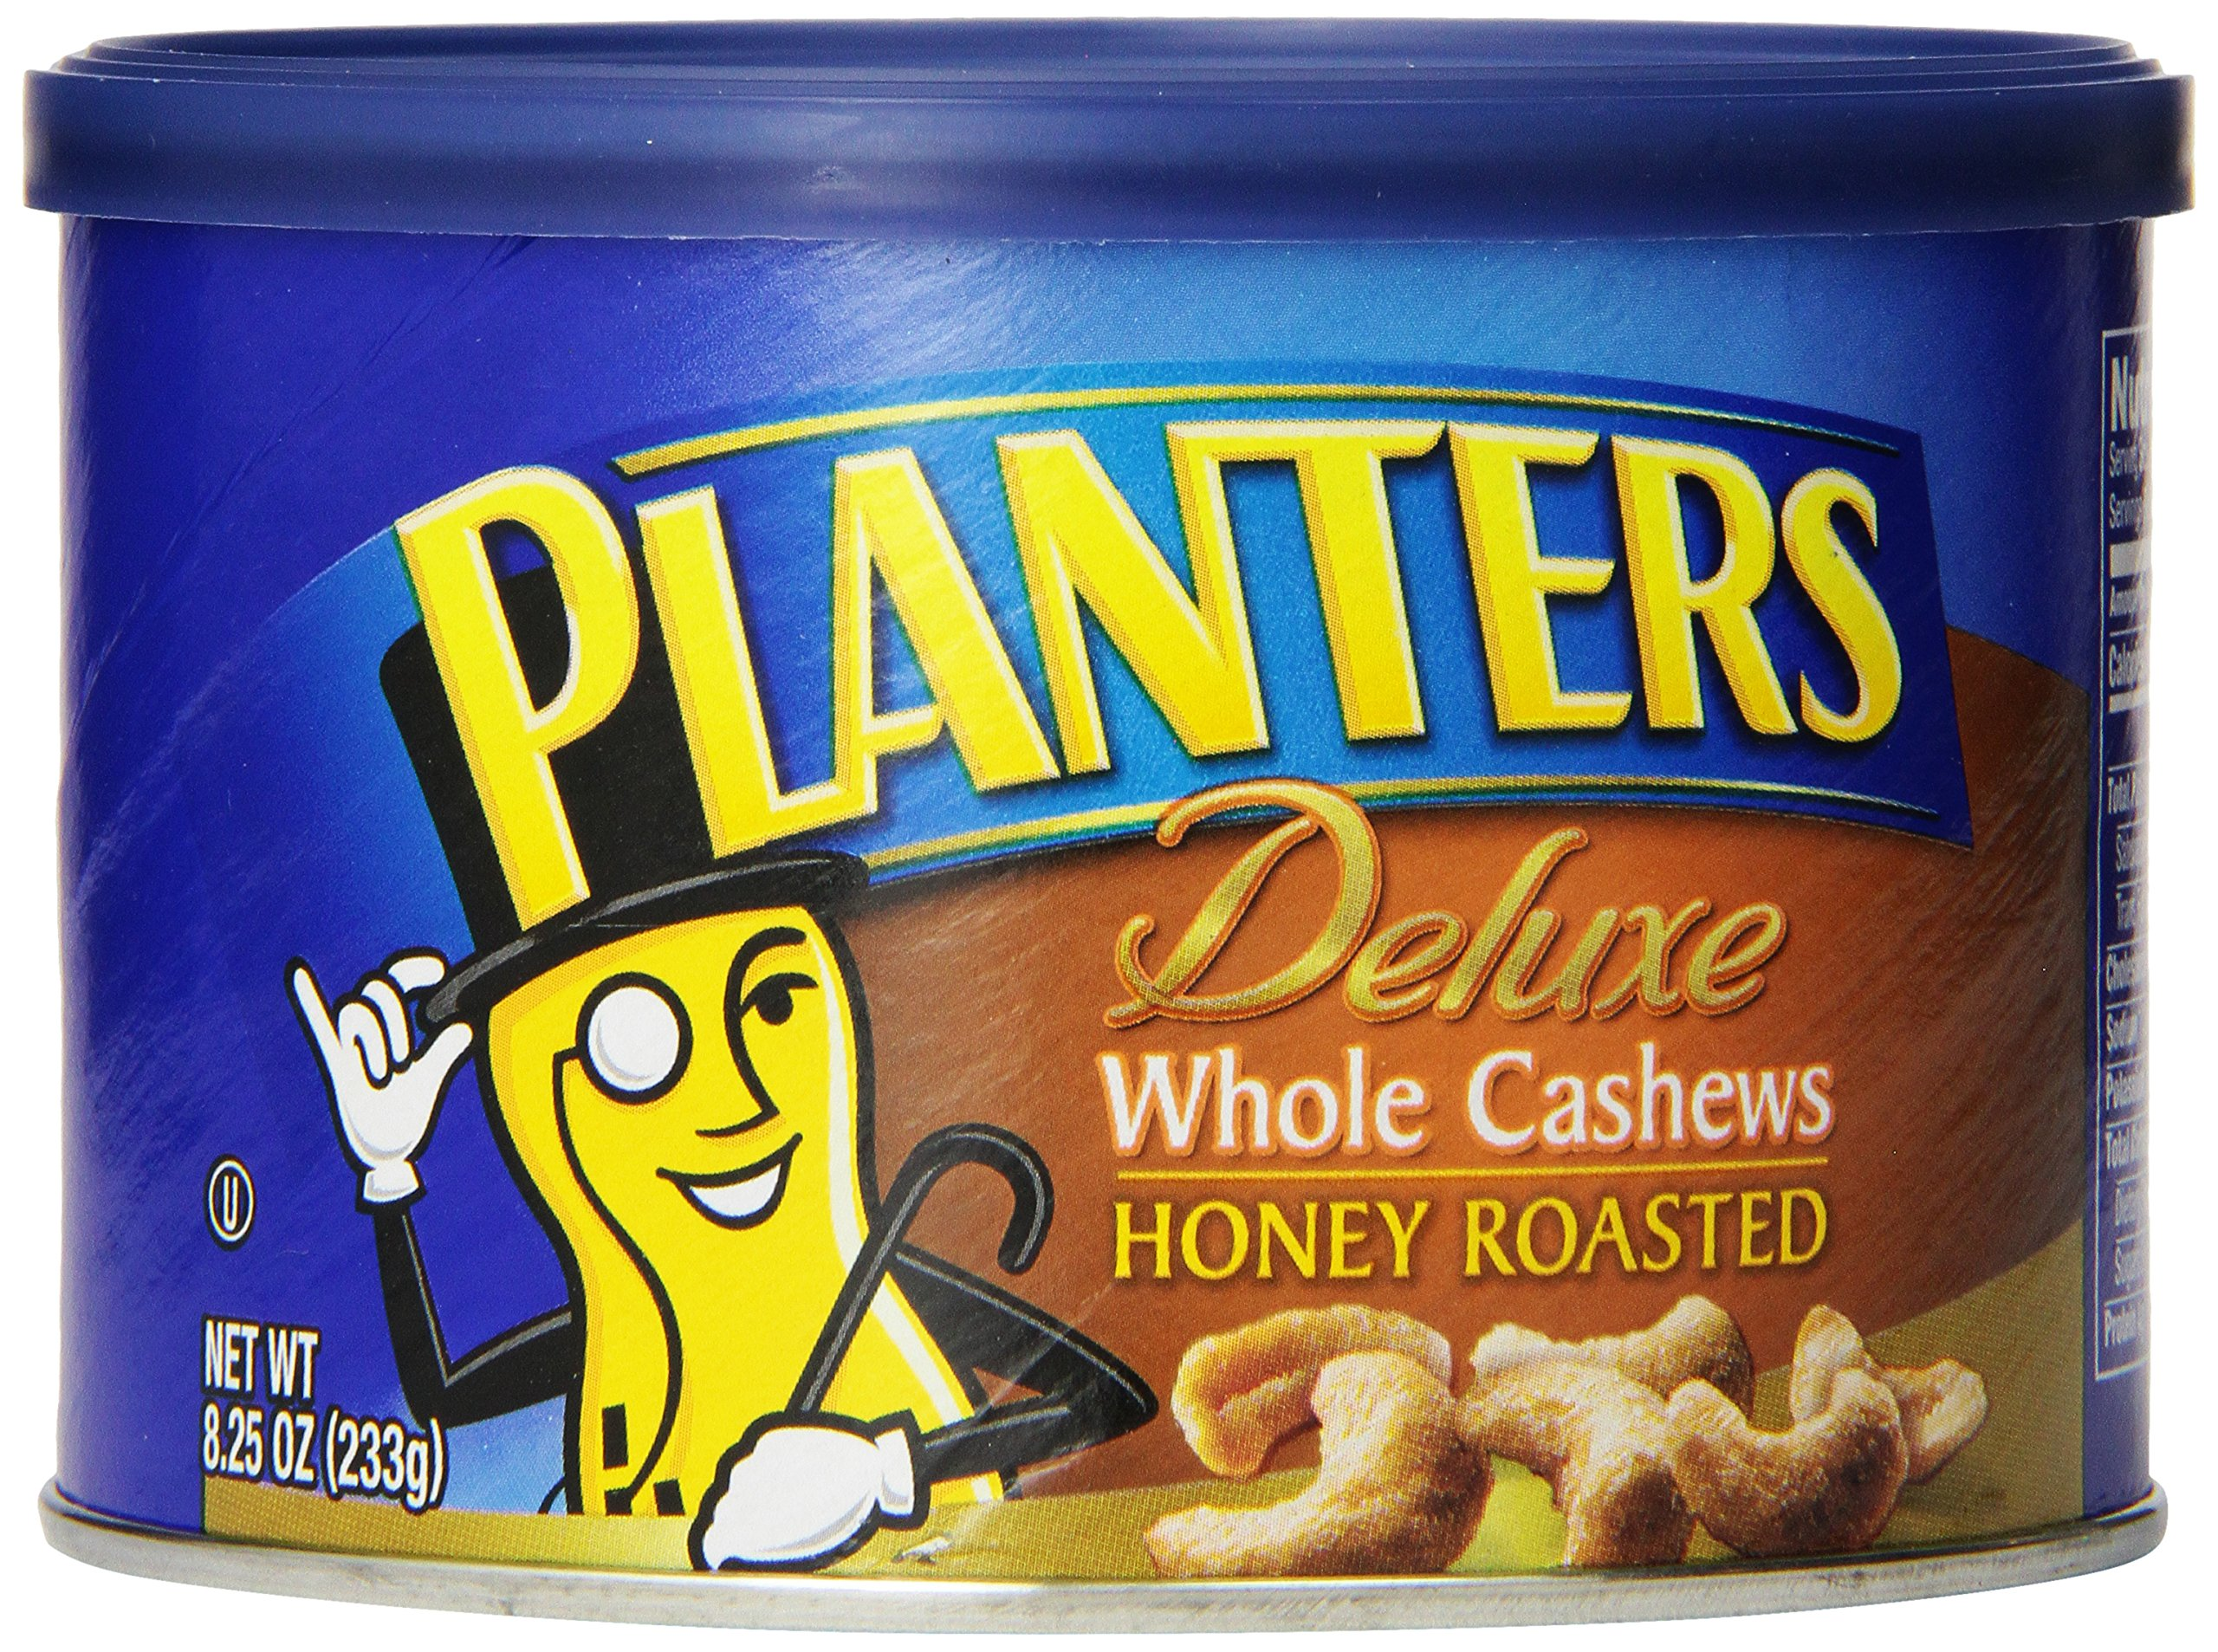 Planters Deluxe Whole Cashews Honey Roasted, 8.25 oz., 3 pack